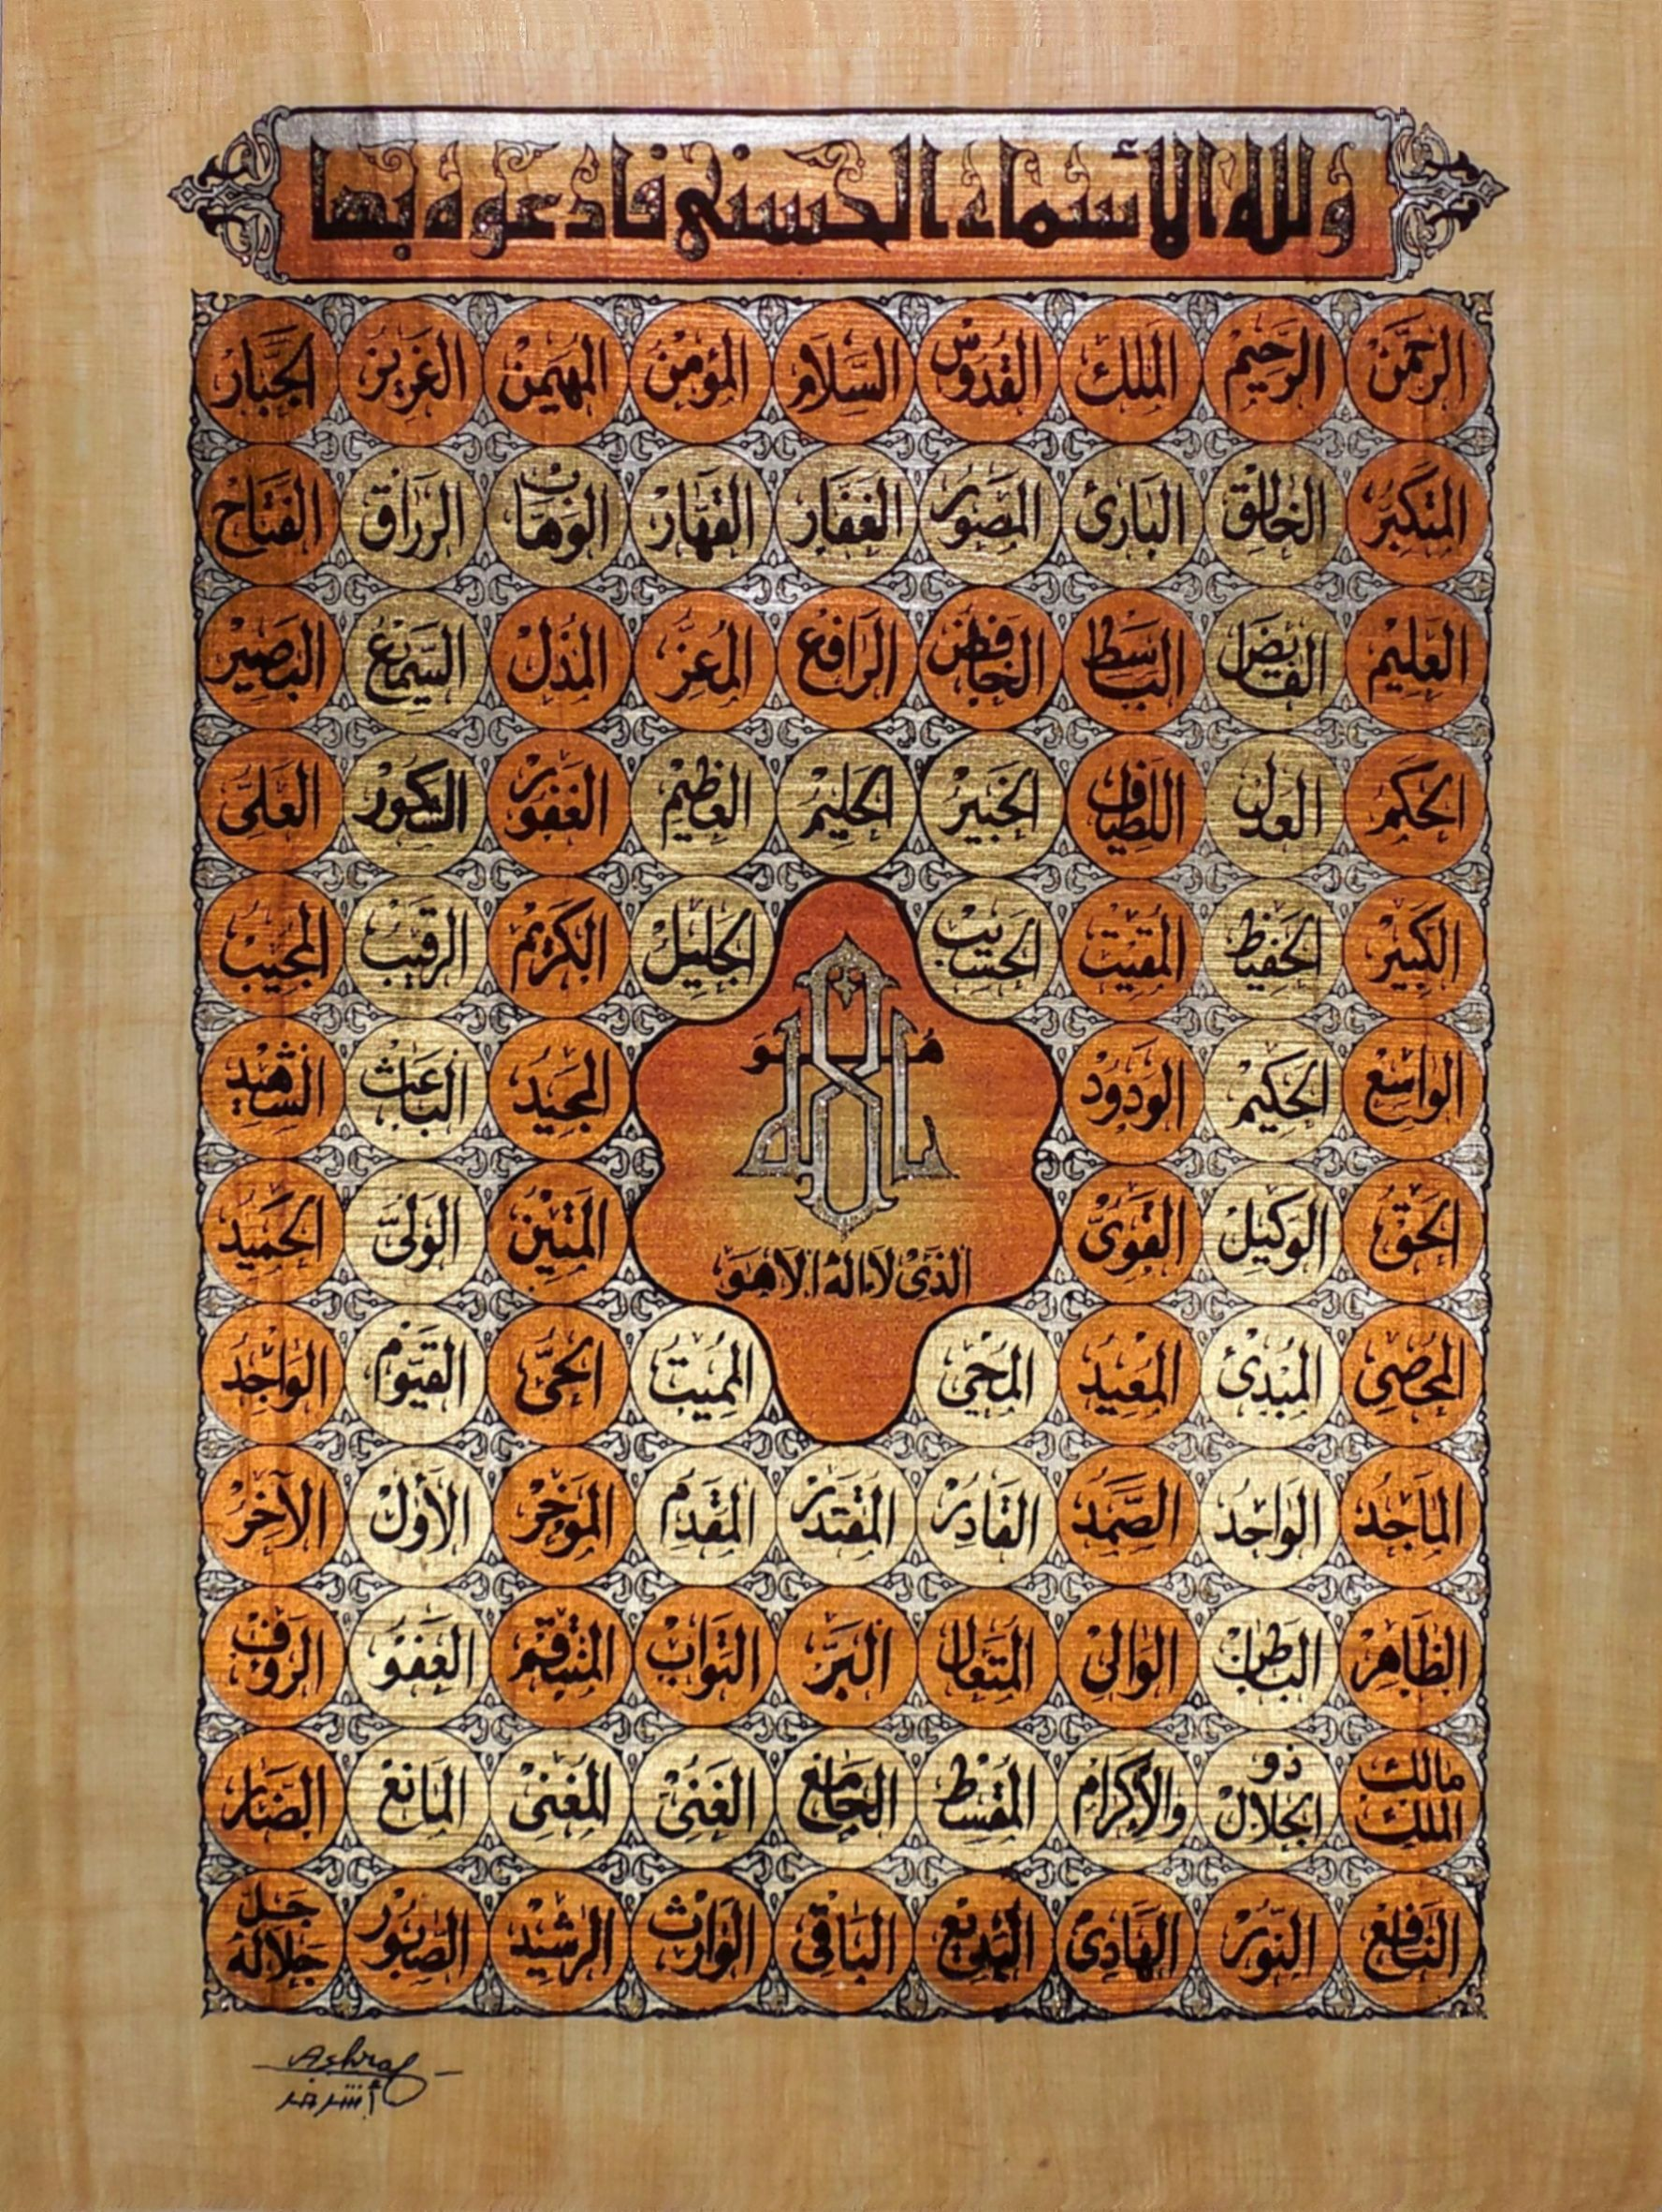 The 99 Names Of Allah Islamic Calligraphy Papyrus Painting Tezhip At Sevgisi Islami Sanat